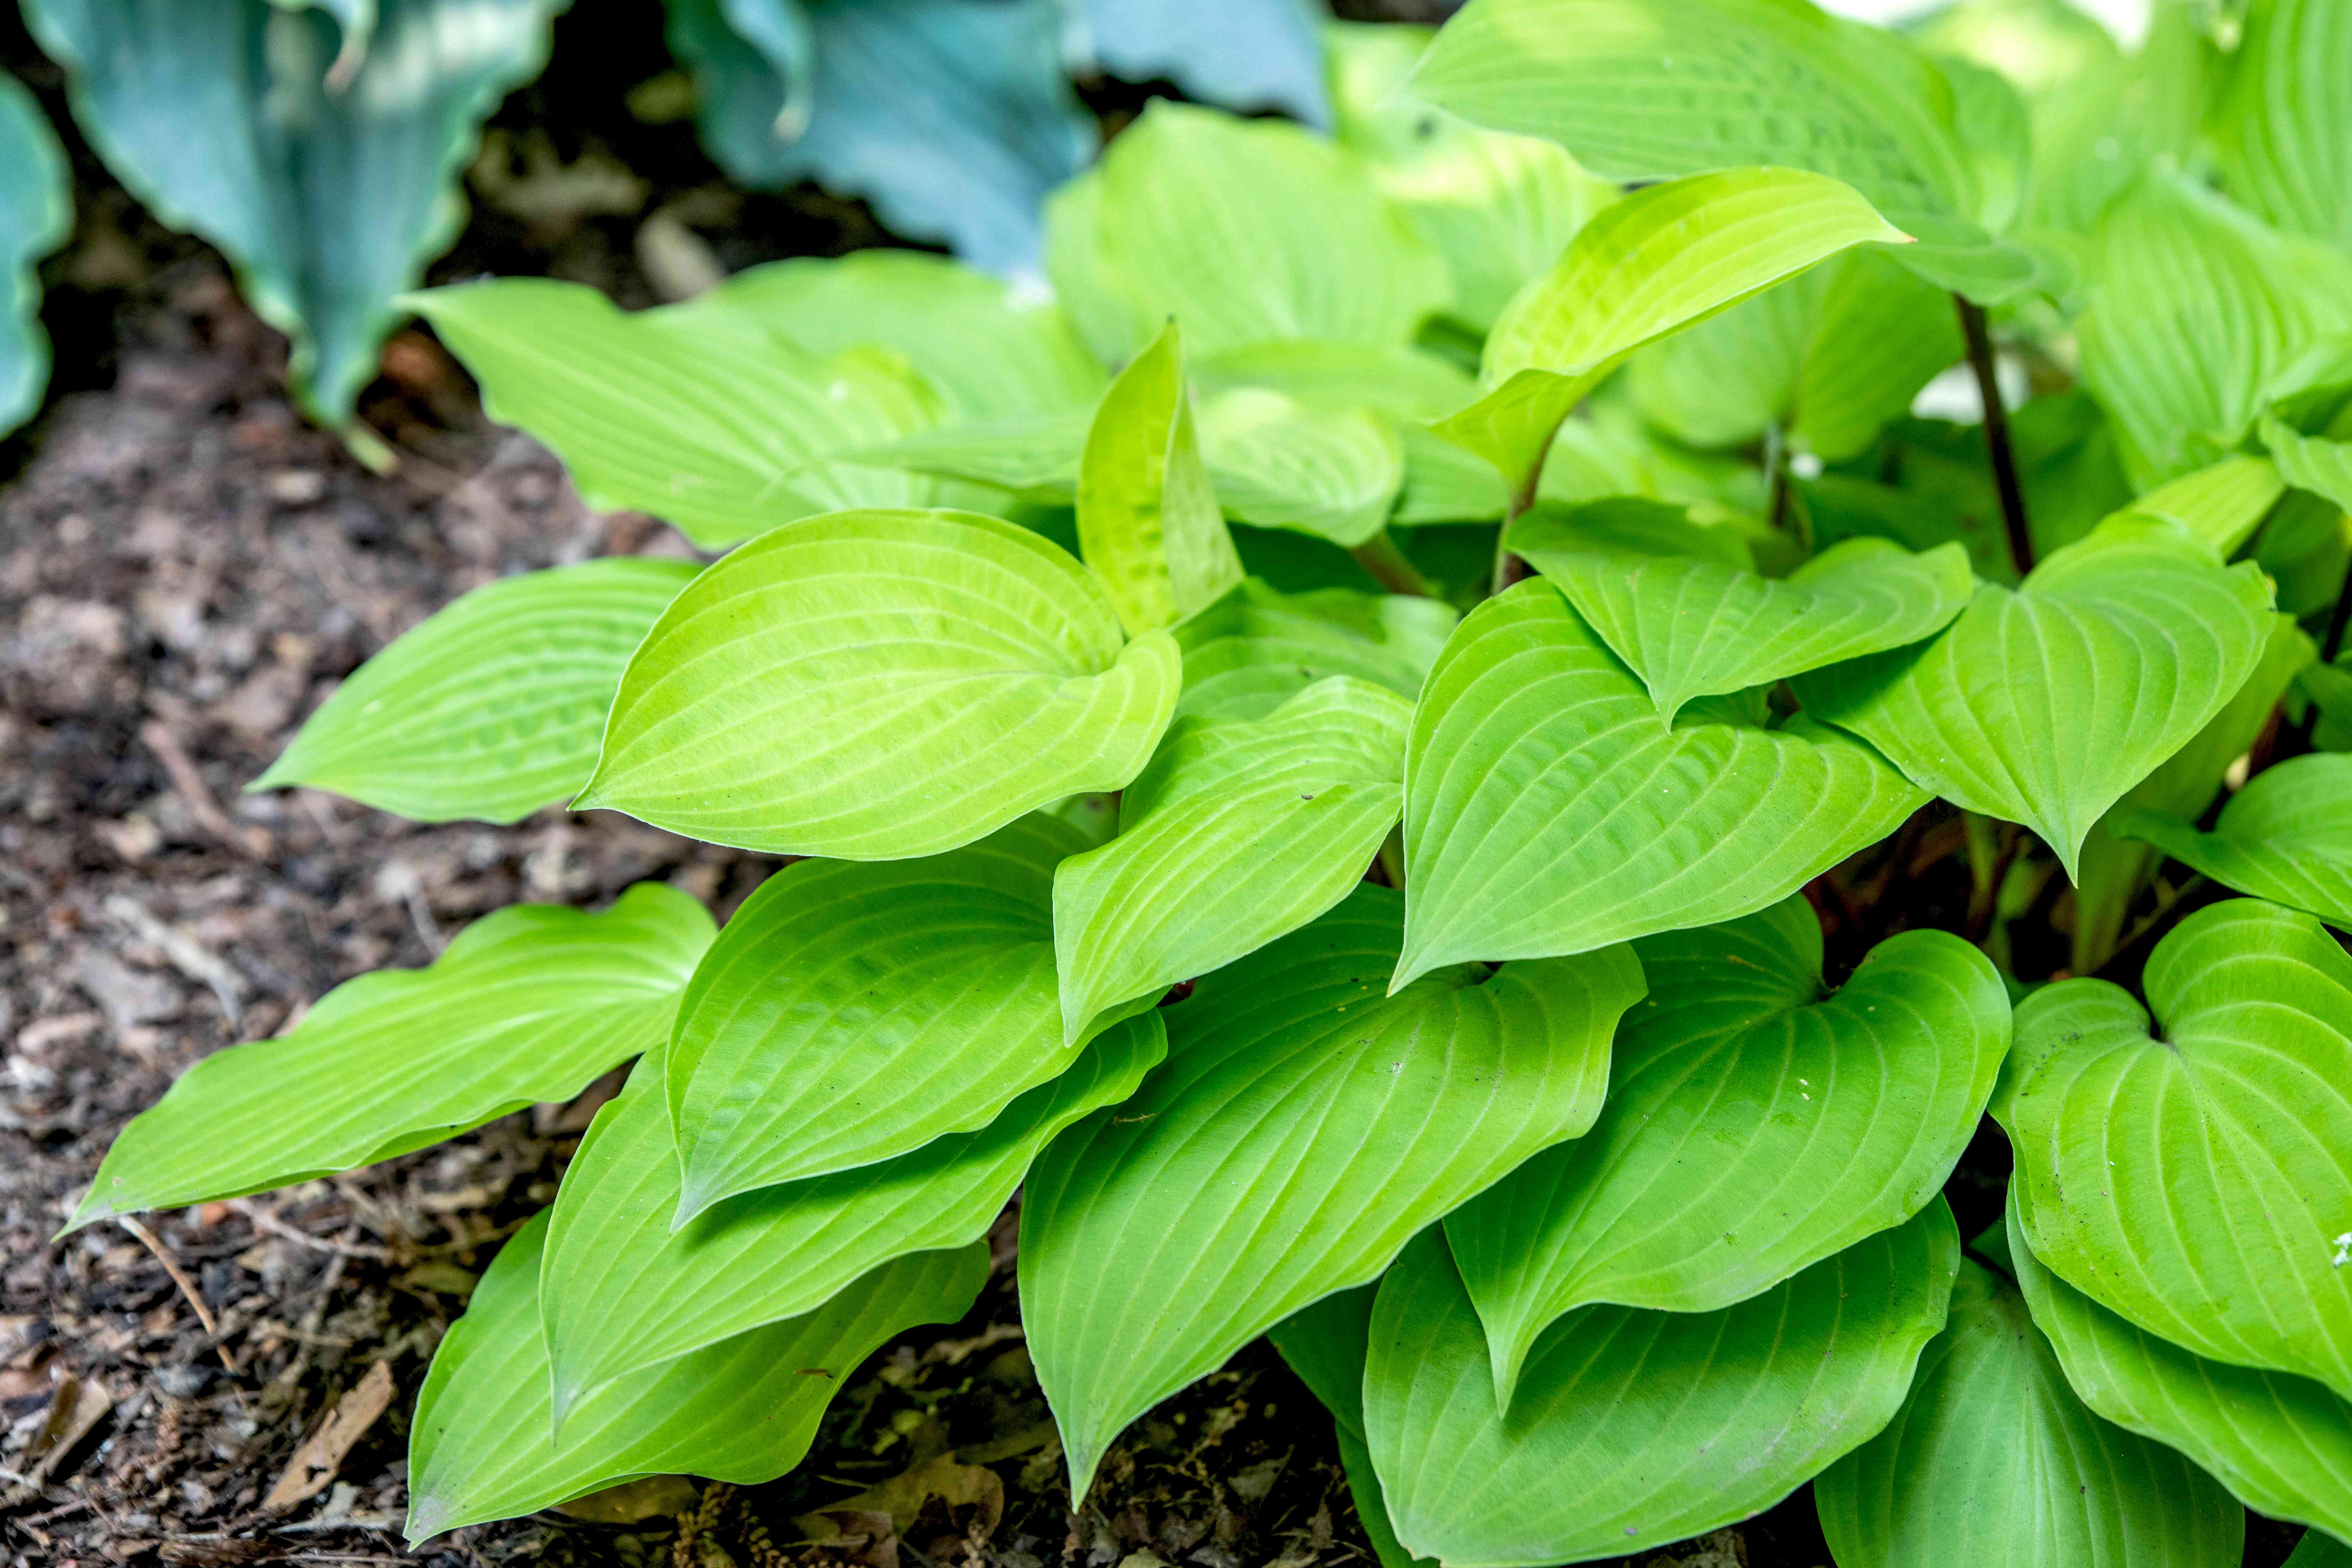 Fire island hosta plant with ribbed bright green leaves planted near the ground